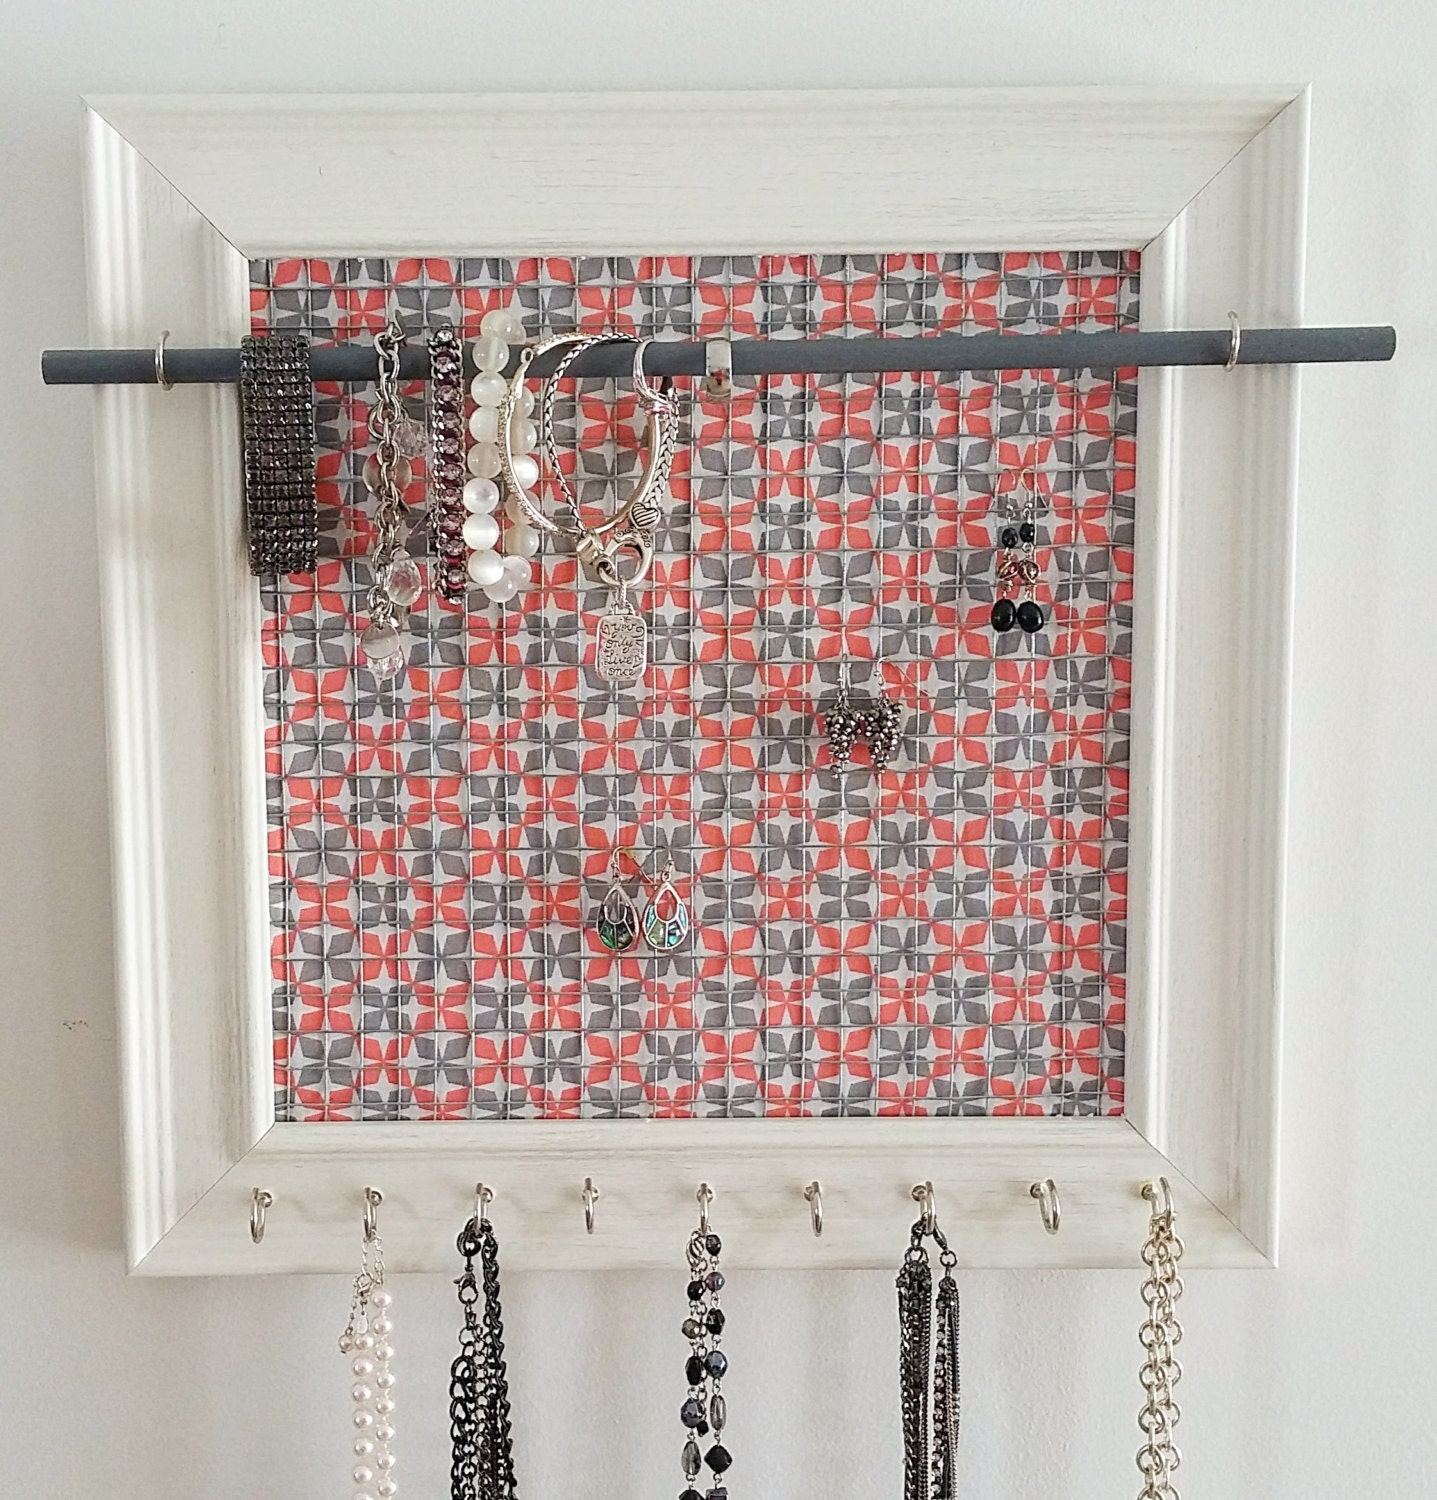 Wall jewelry organizer handmade jewelry organizer gift for for Picture frame organization wall